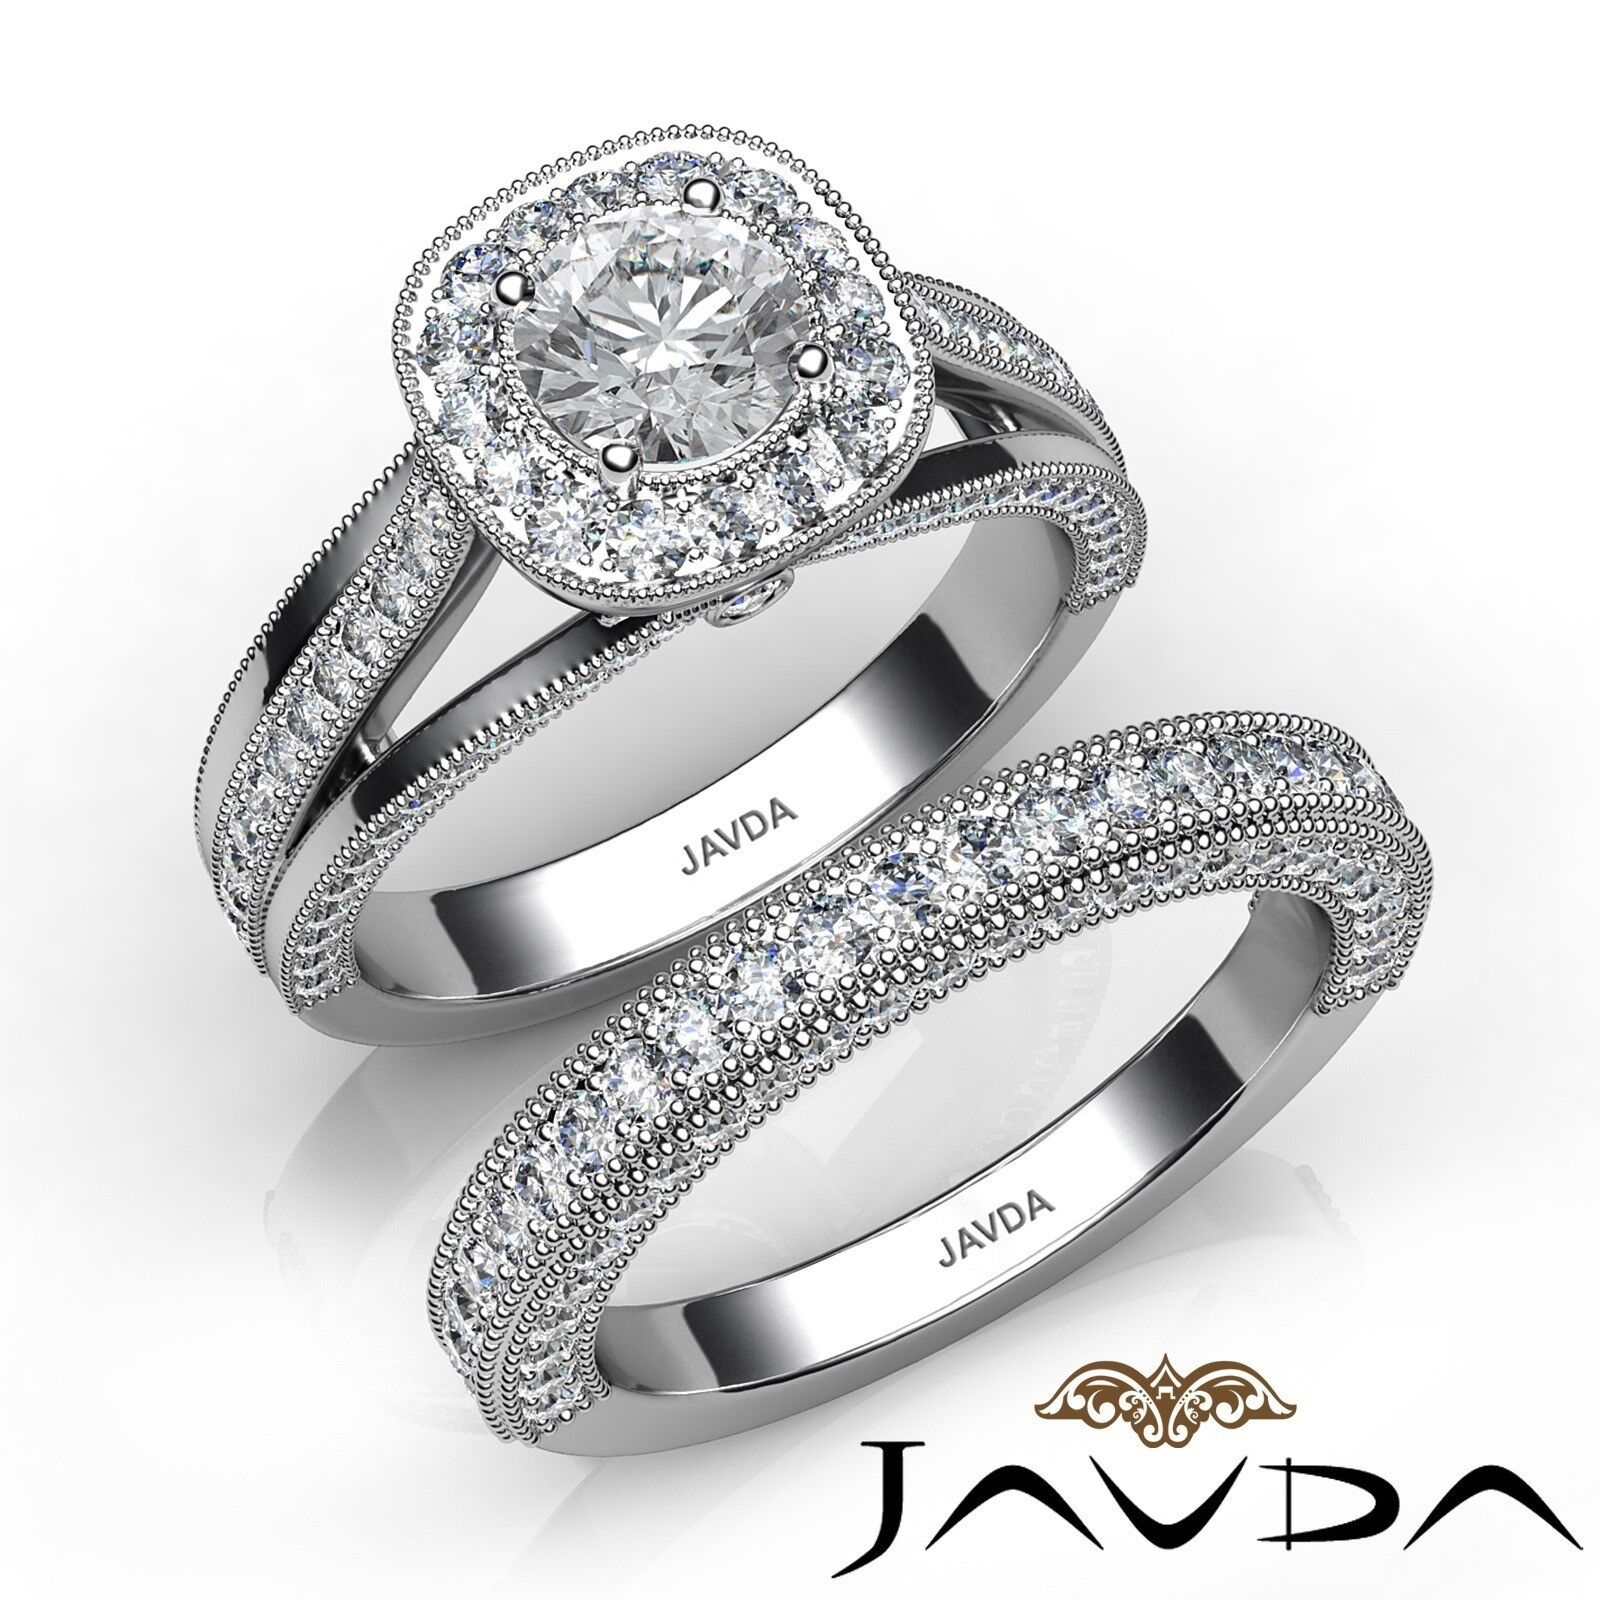 2.32ctw Milgrain Bridal Set Halo Round Diamond Engagement Ring GIA H-VS2 W Gold